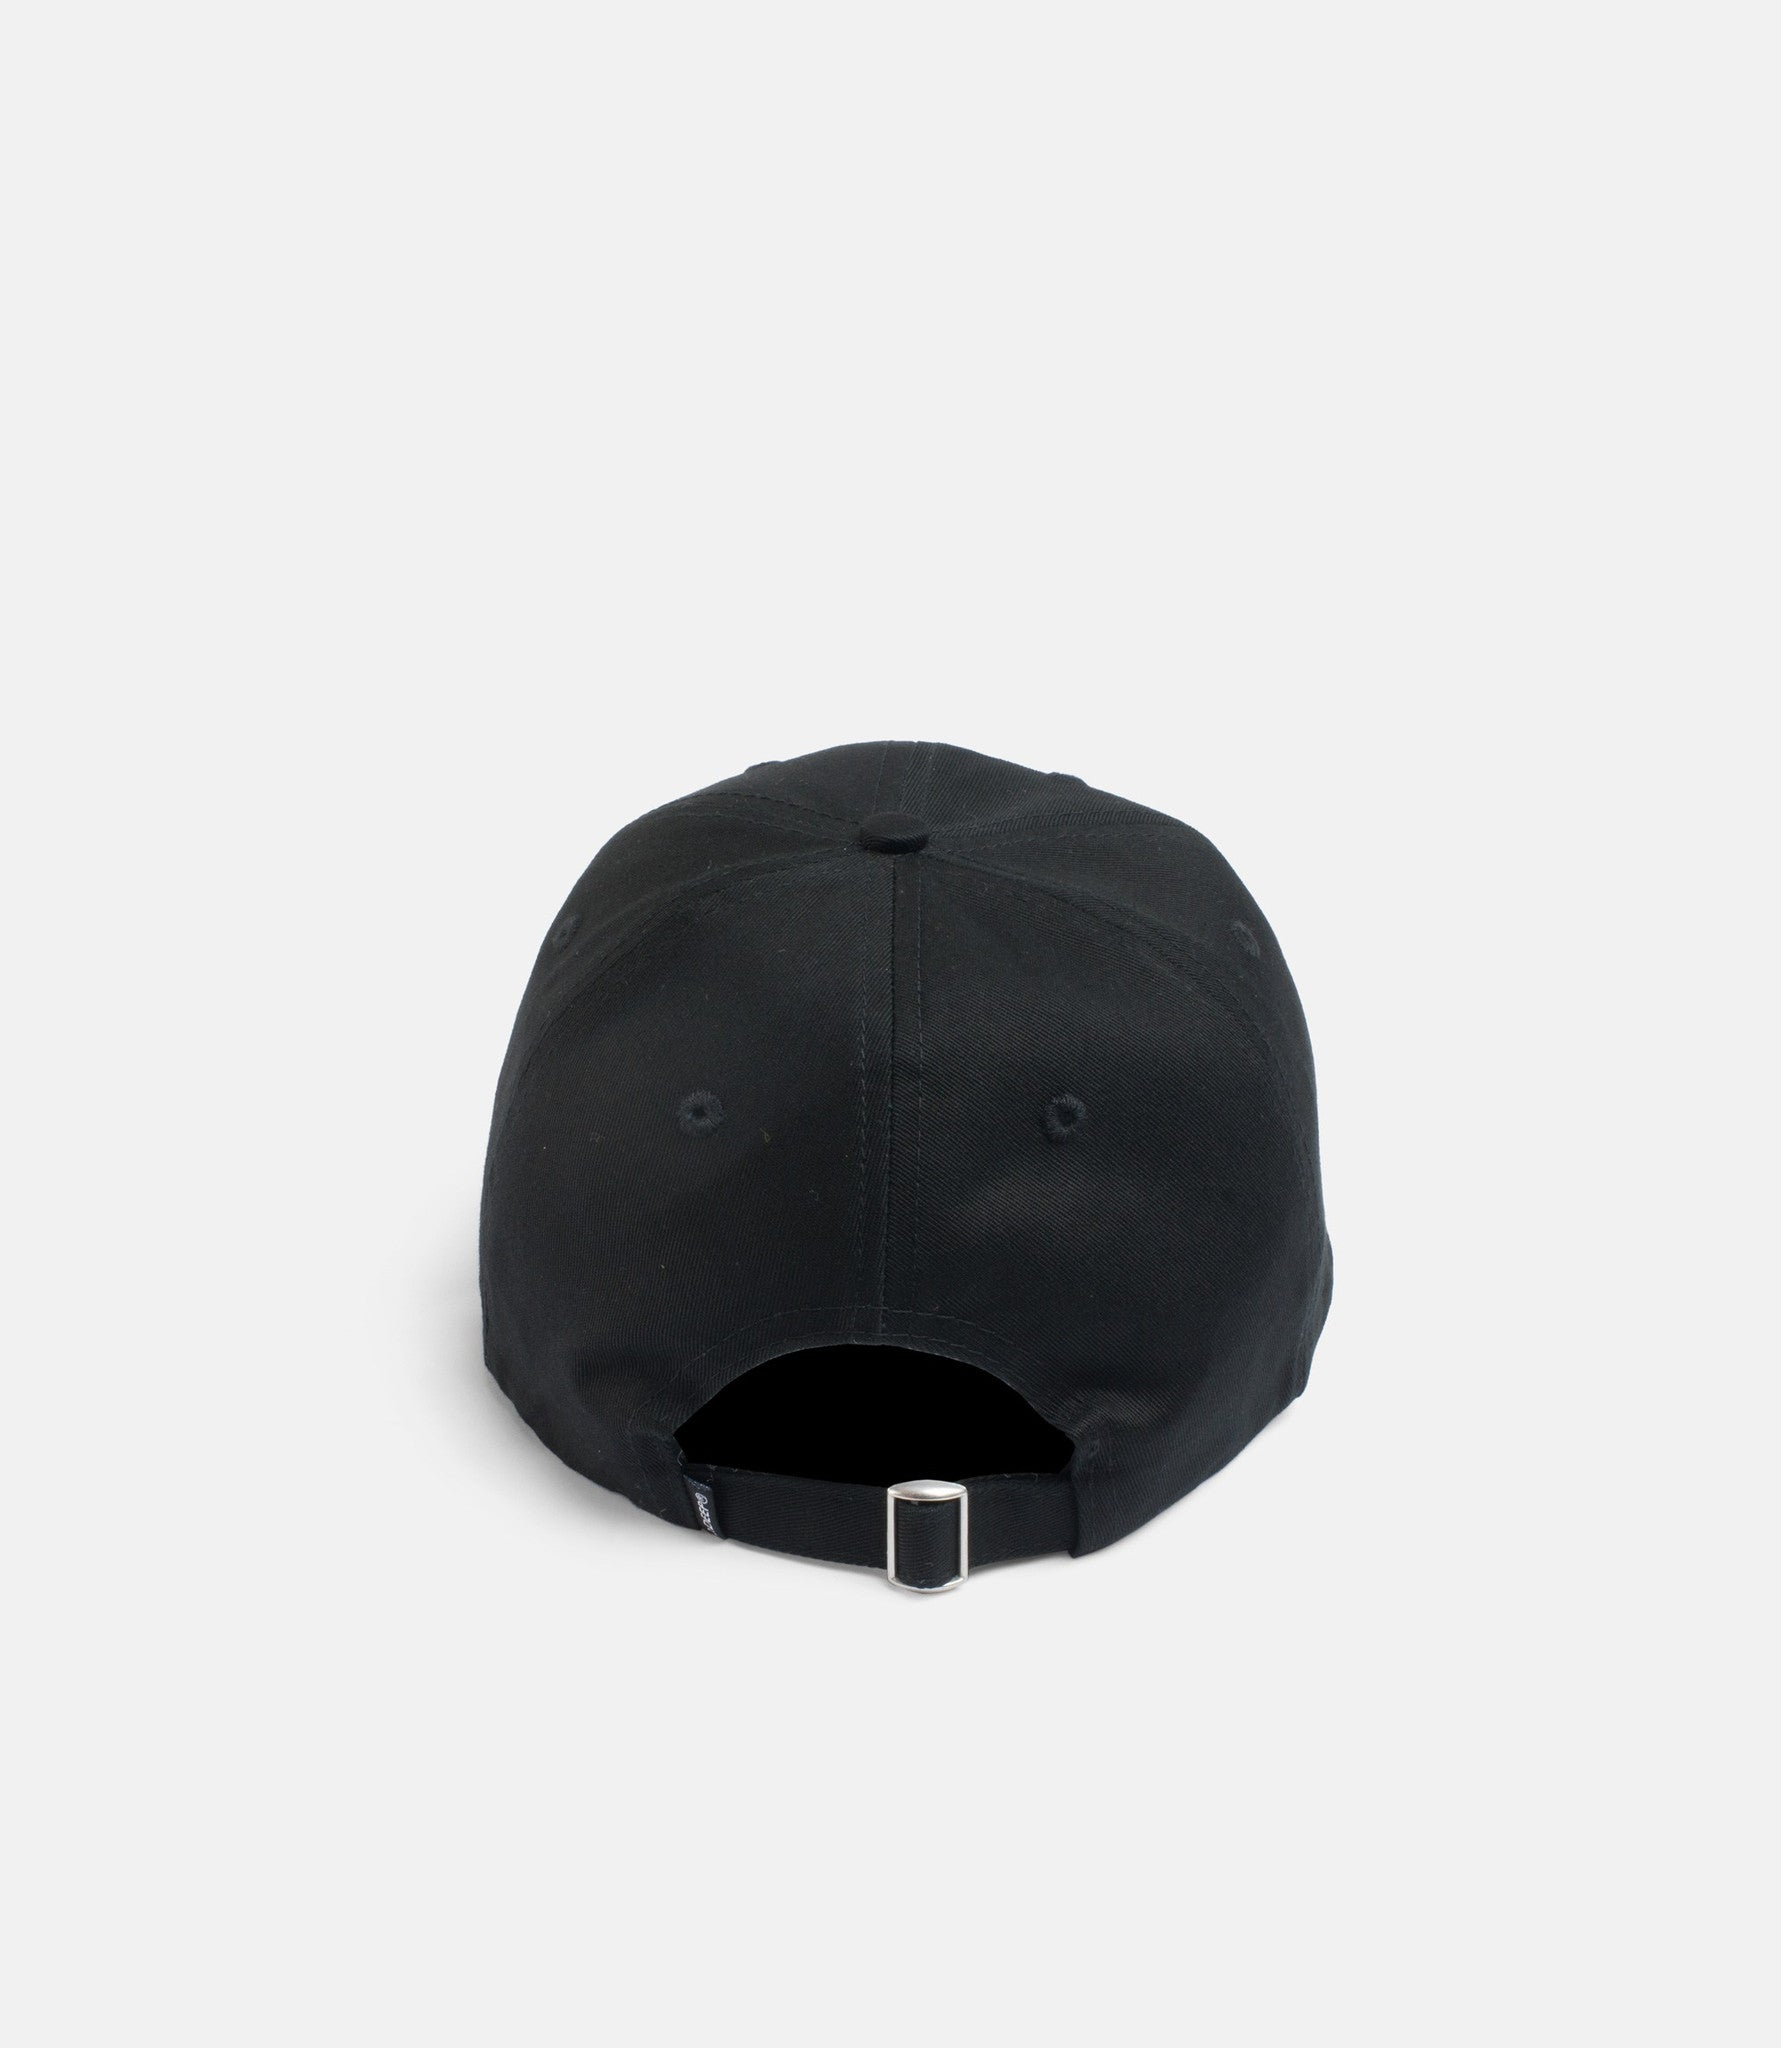 10Deep - Sound & Fury Strapback, Black - The Giant Peach - 4